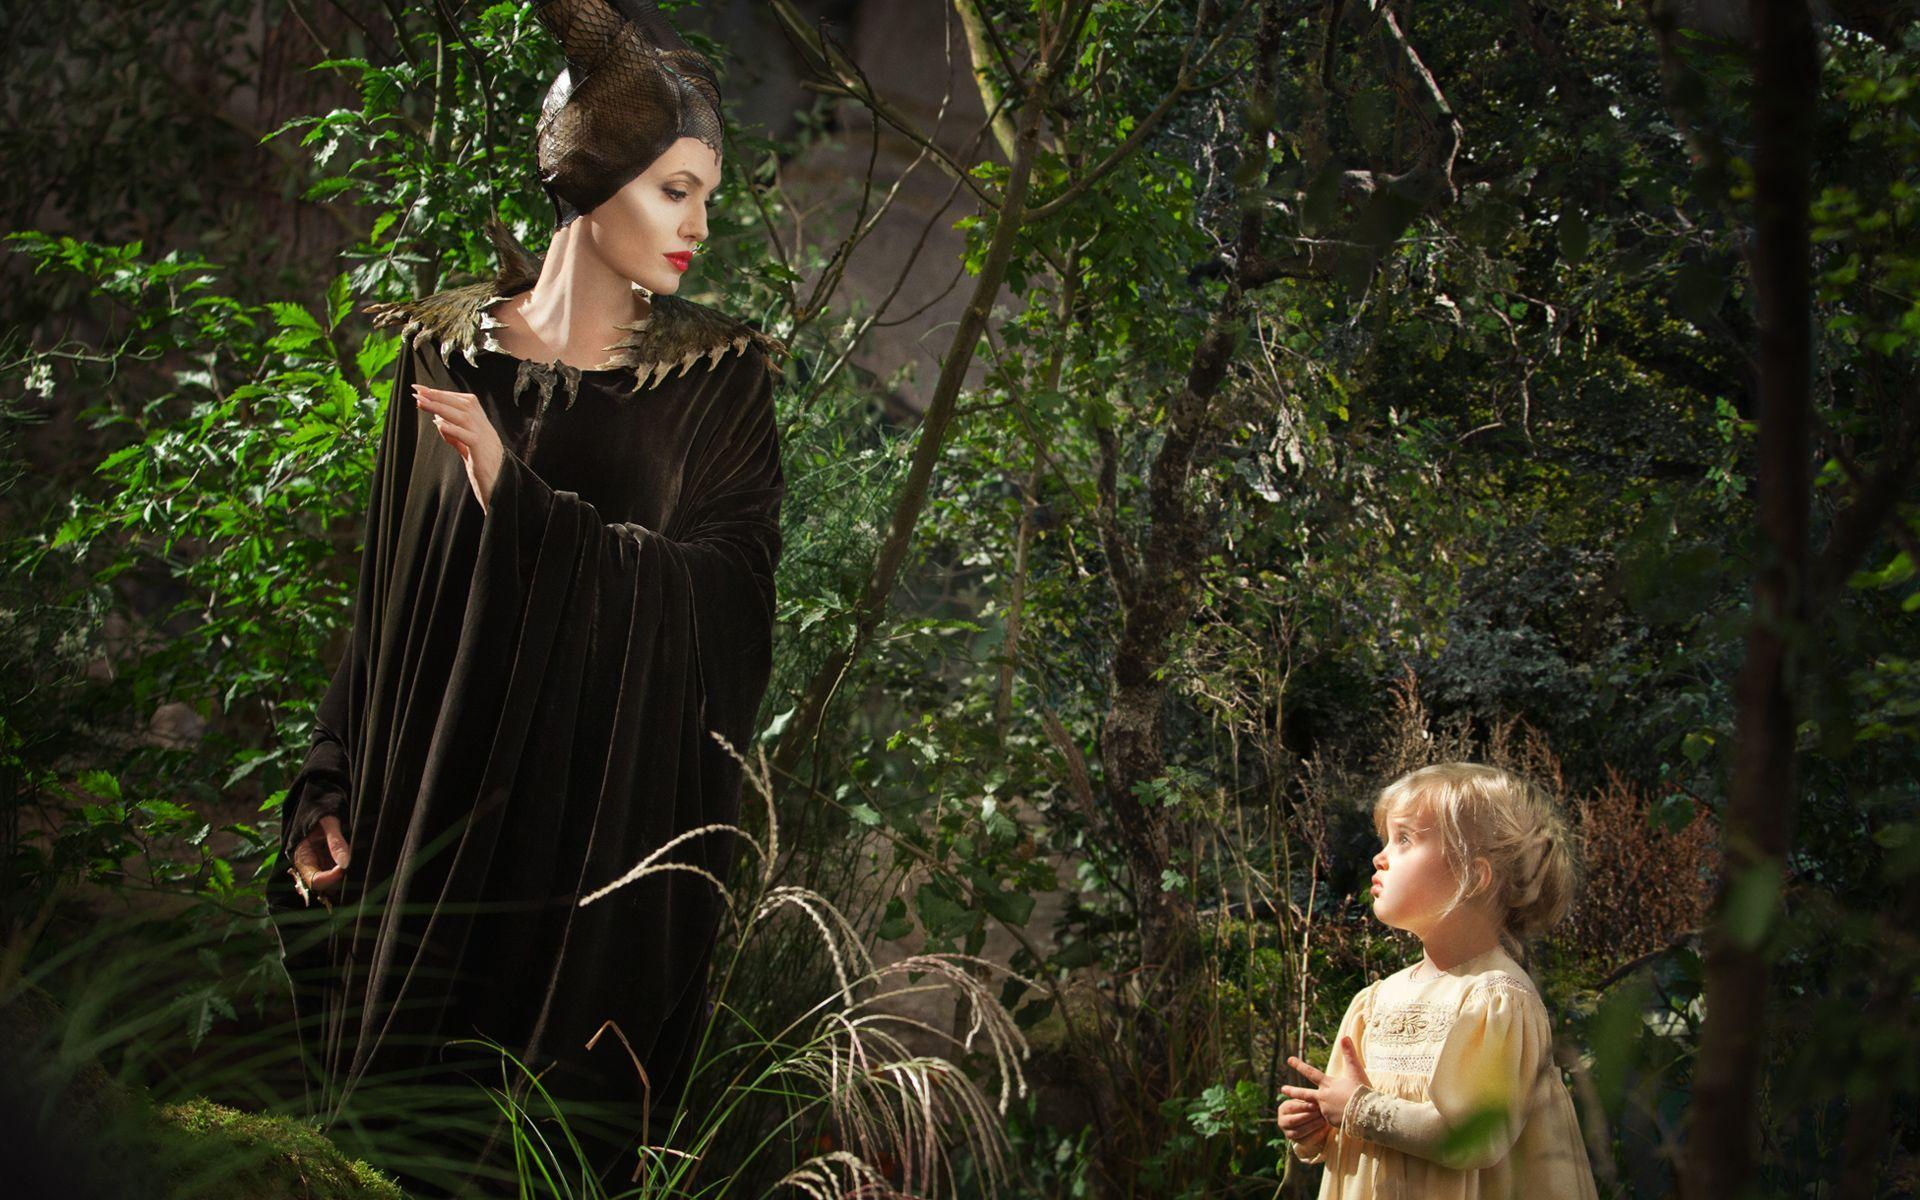 Maleficent & young Sleeping Beauty